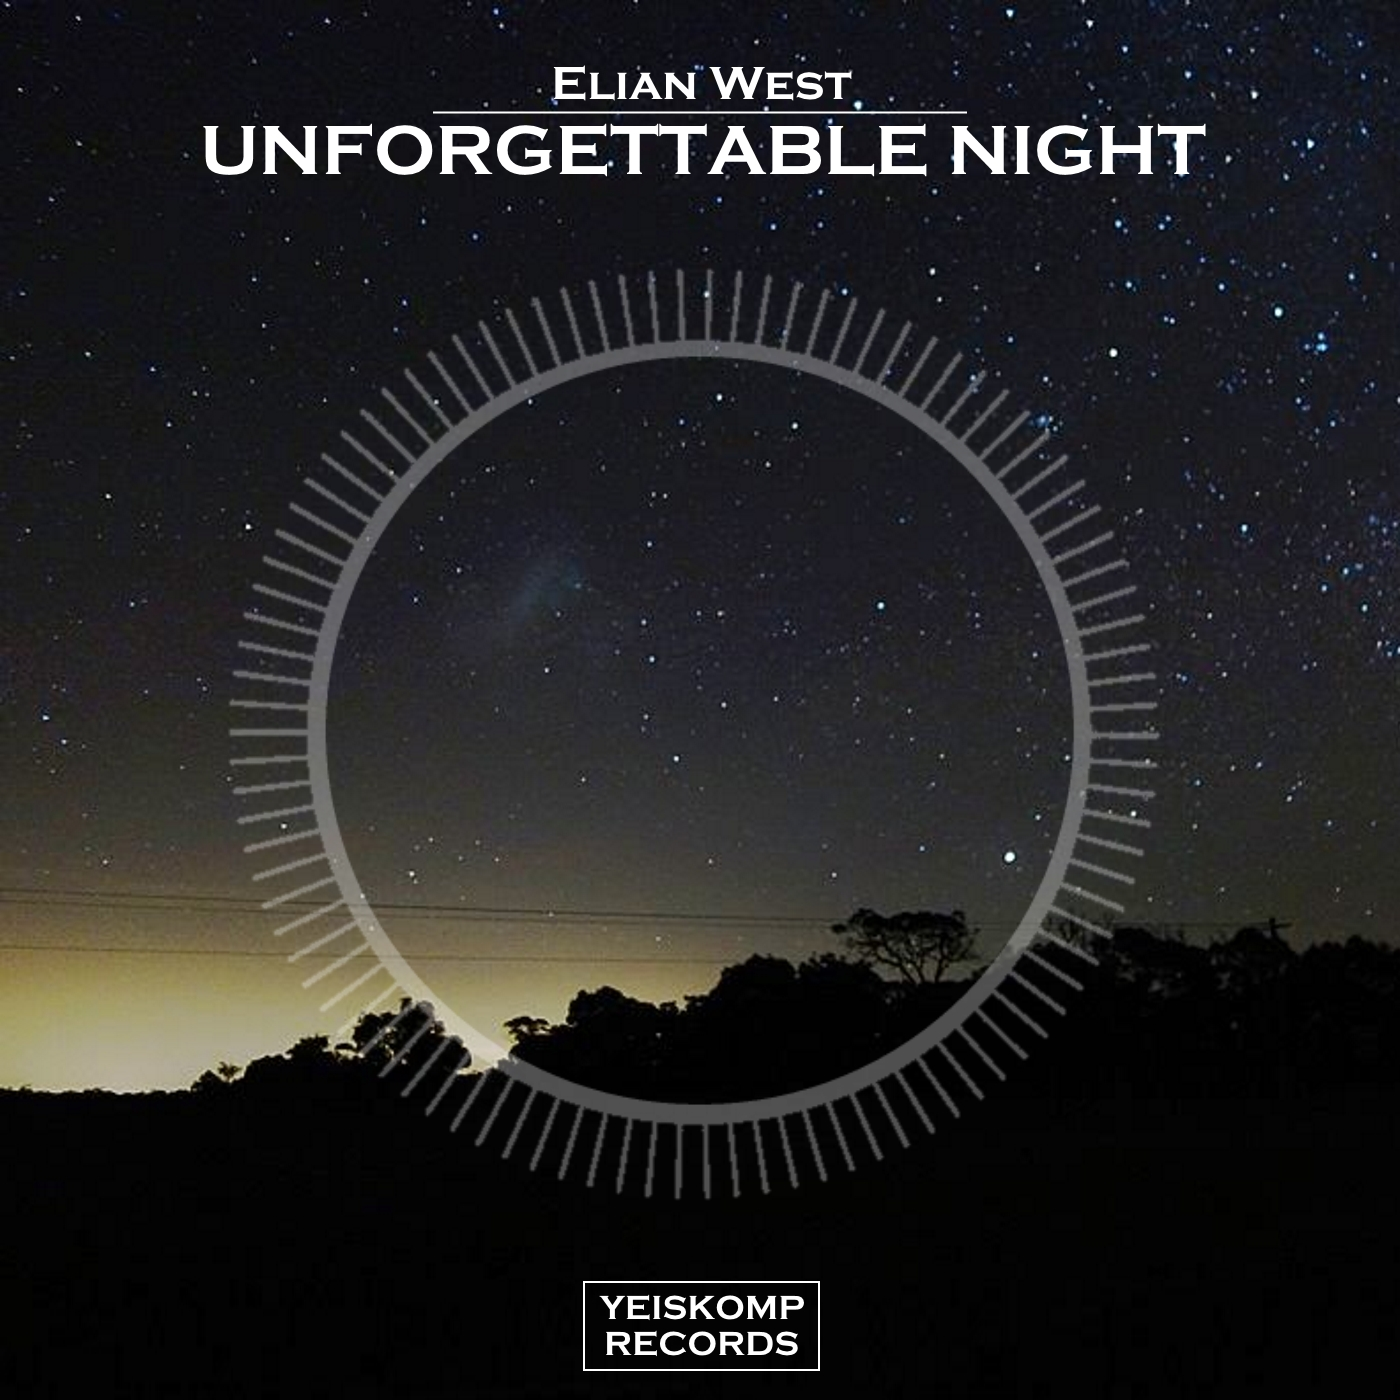 Elian West - Unforgettable Night (Original Mix)